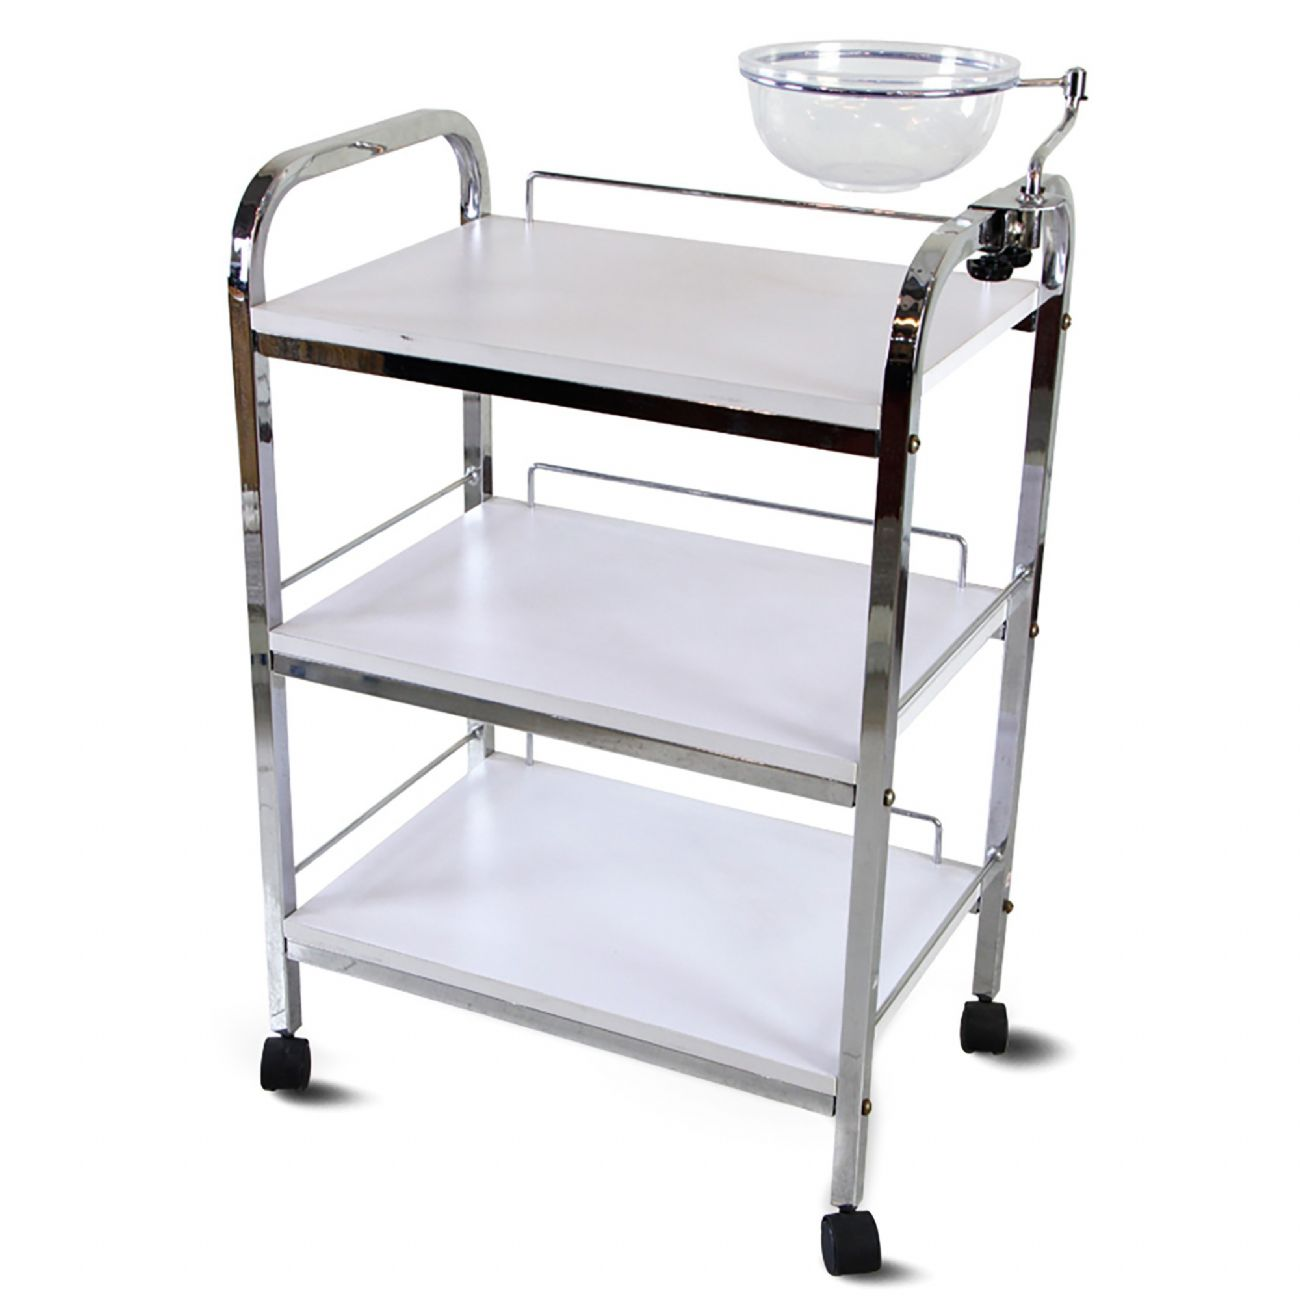 EPSI Trolley 3 shelves with manicure bowl